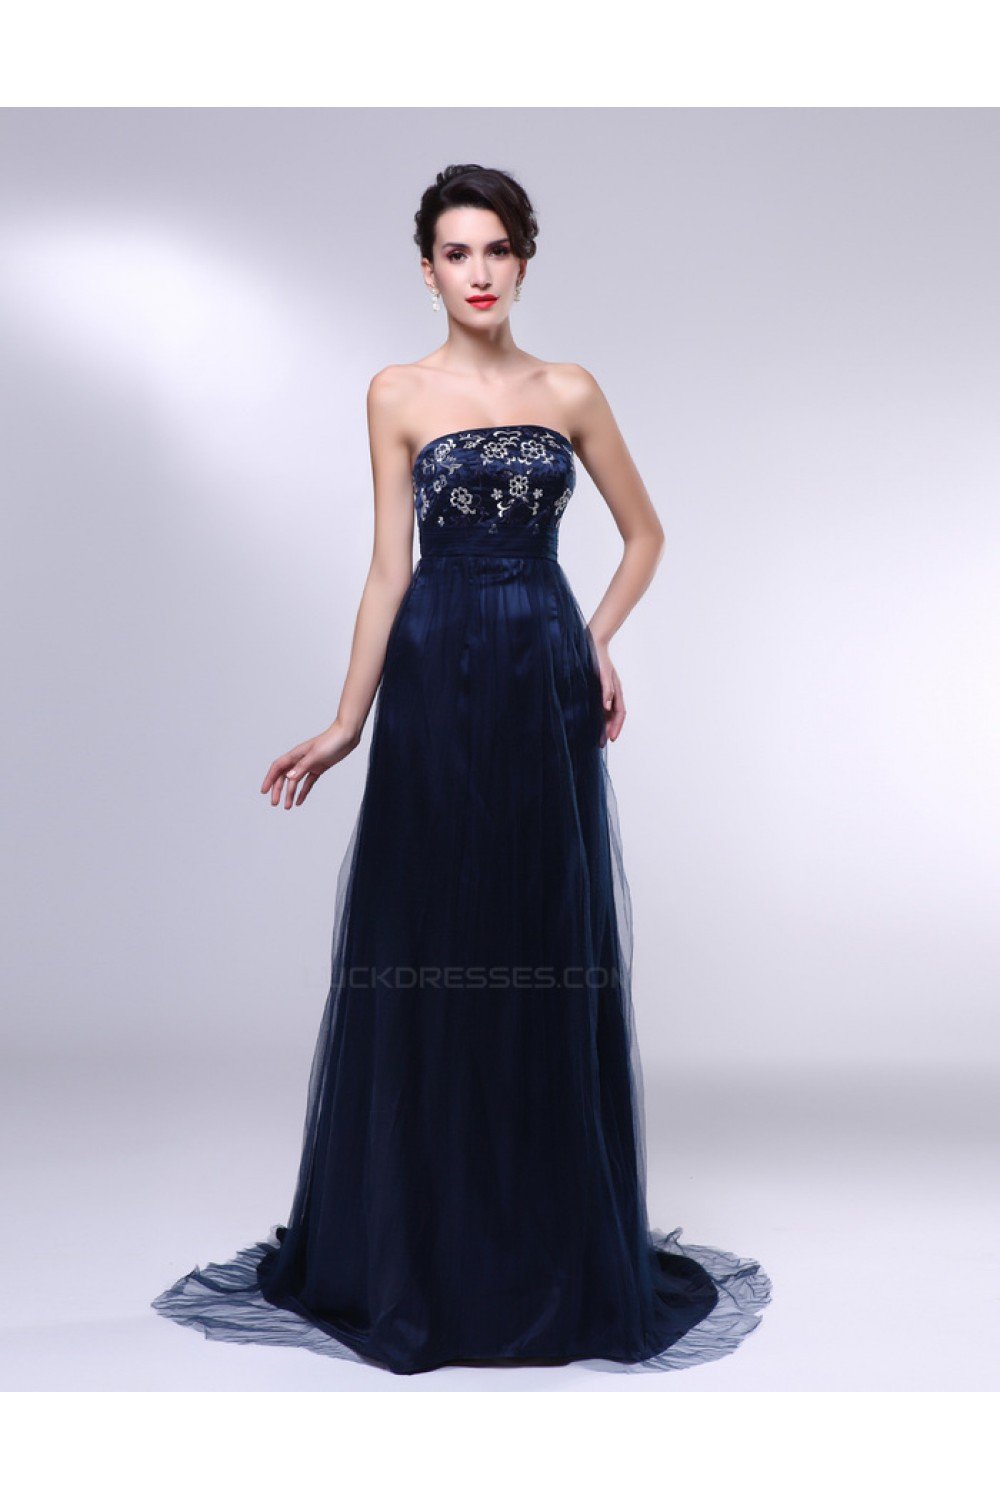 A-Line Strapless Navy Blue Long Prom Evening Formal